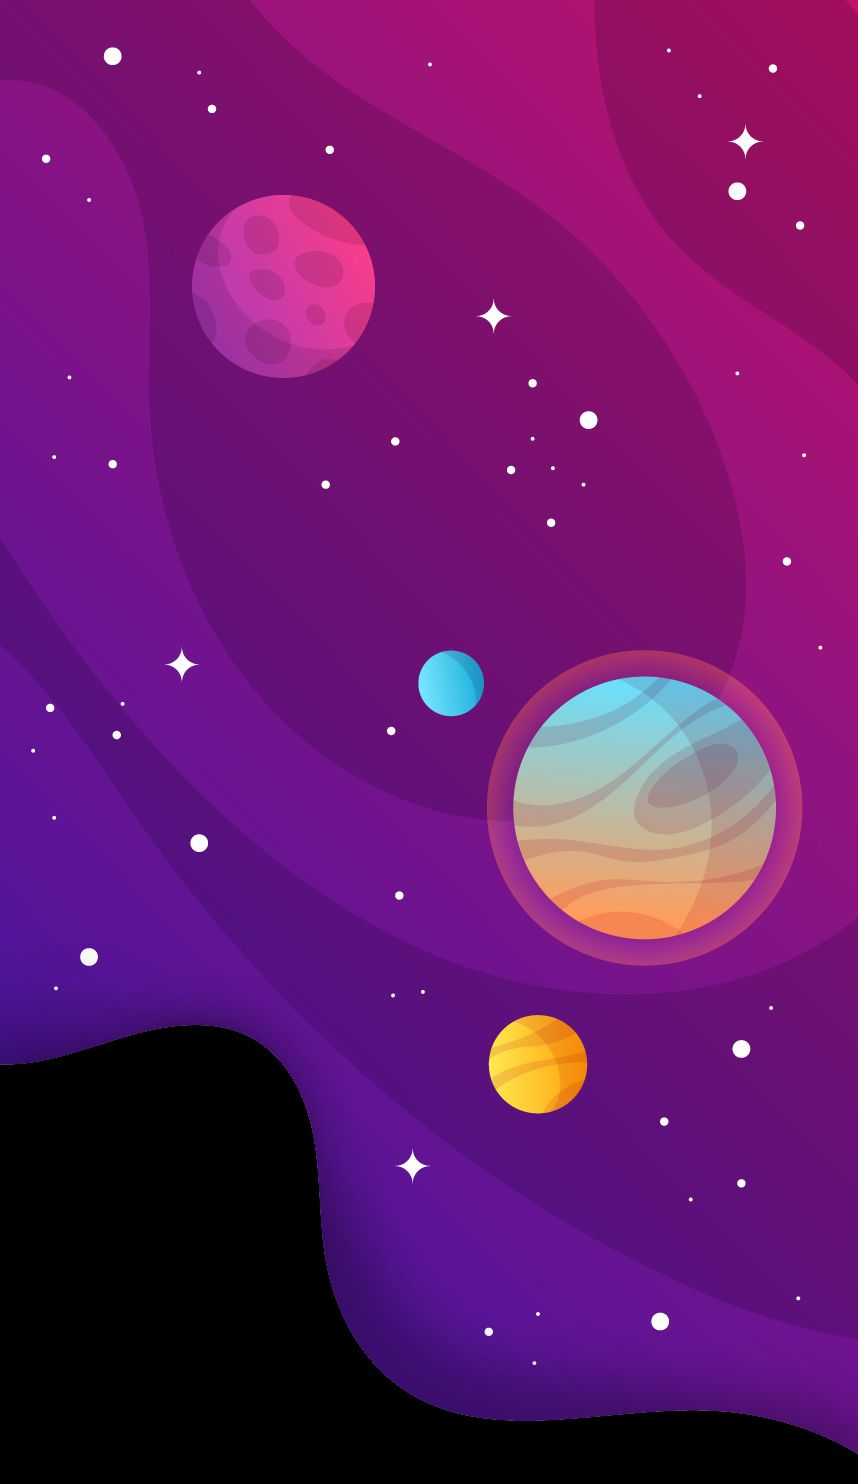 Space Minimalist Wallpaper: Space Minimalist Wallpaper...